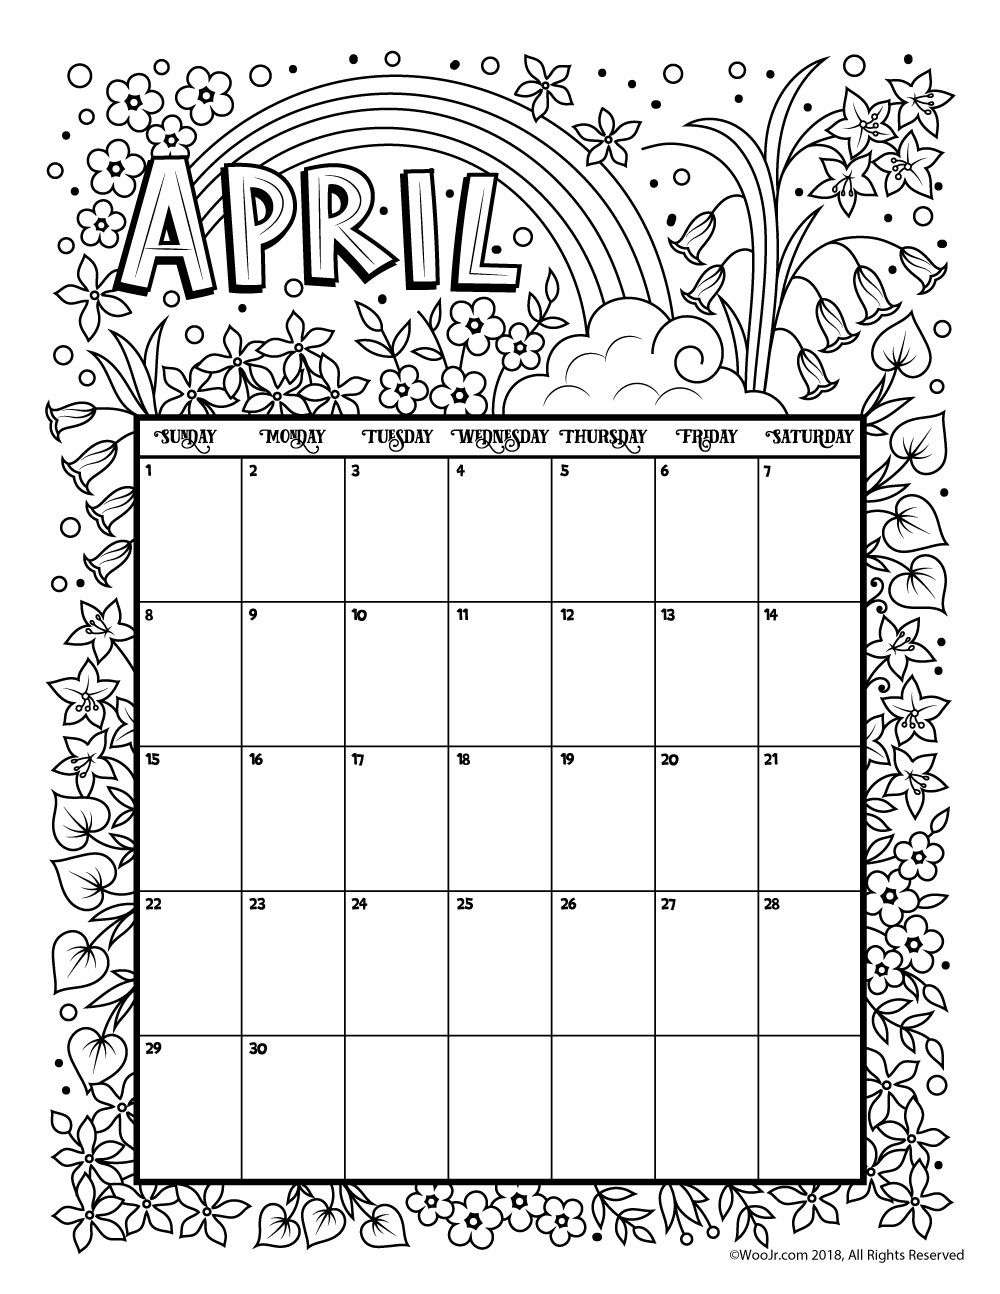 Printable Coloring Calendar For 2019 (And 2018!) | Holiday Happiness with regard to Free Printable Adult October Calendar 2019 Coloring Sheets